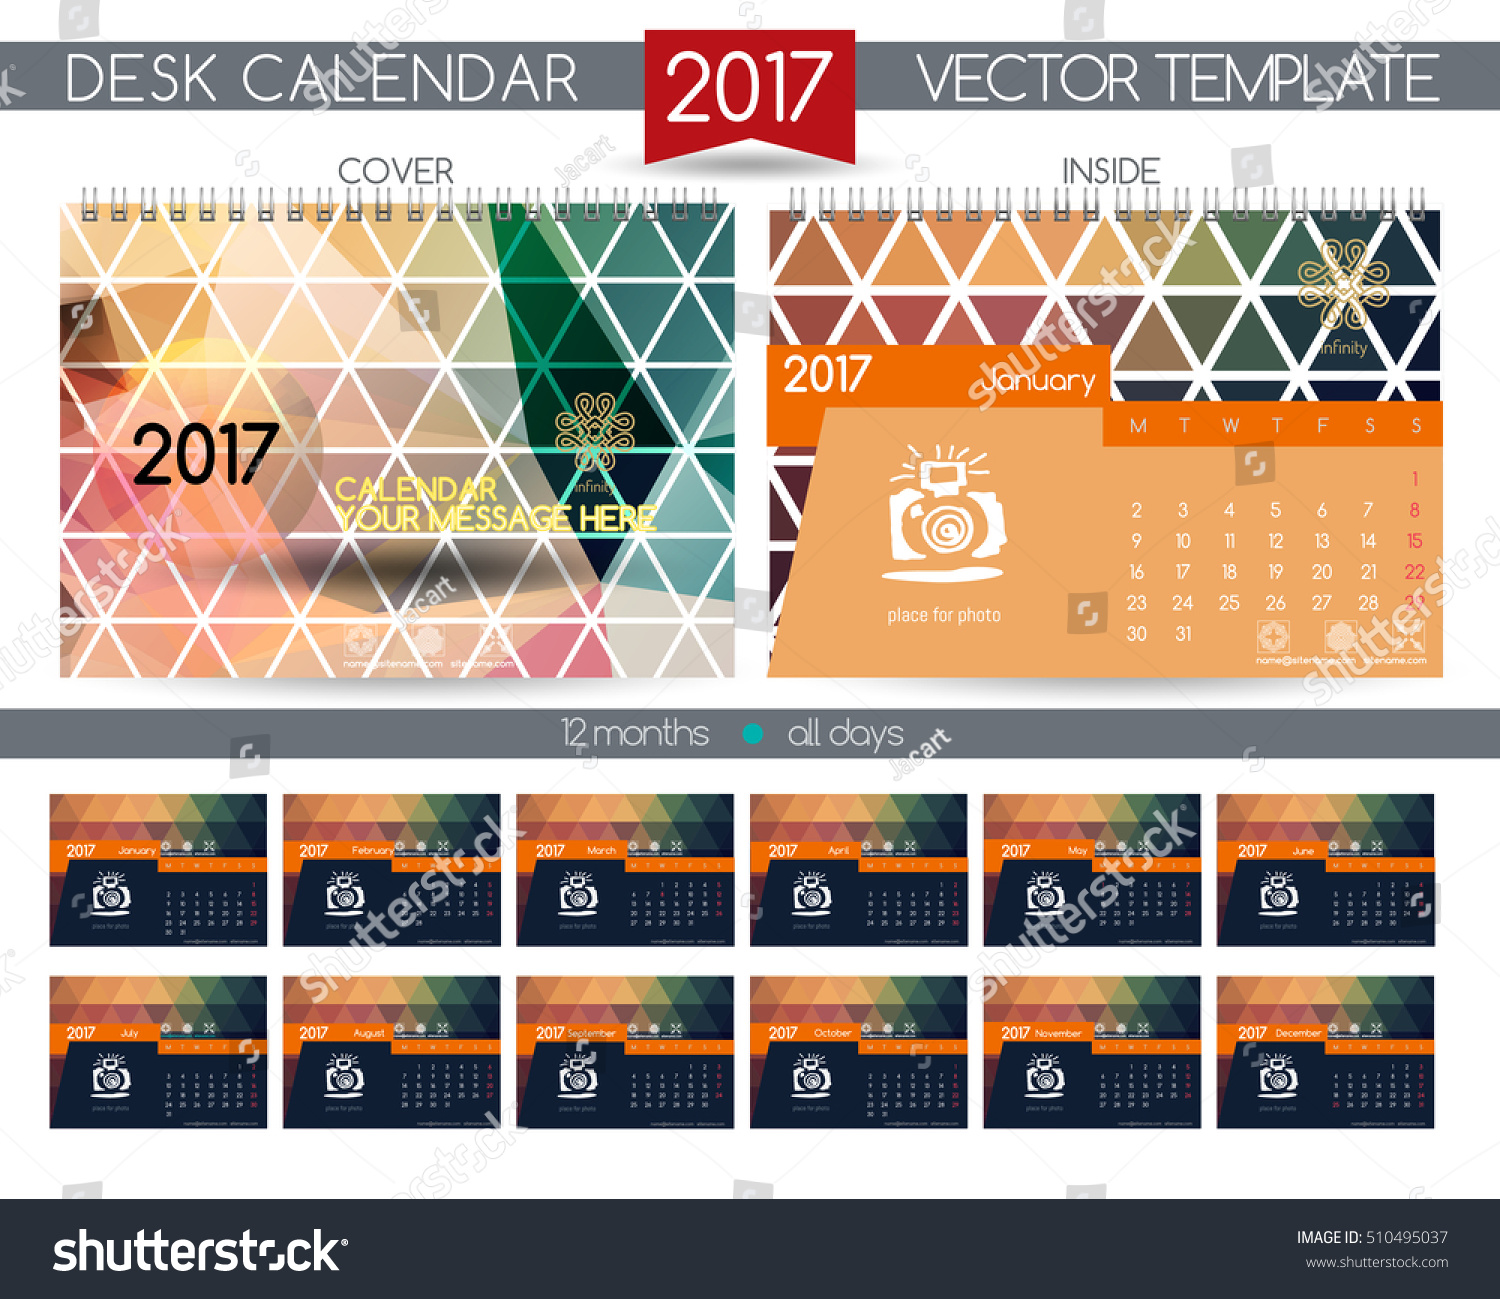 Calendar All Months : Calendar vector templates all months stock